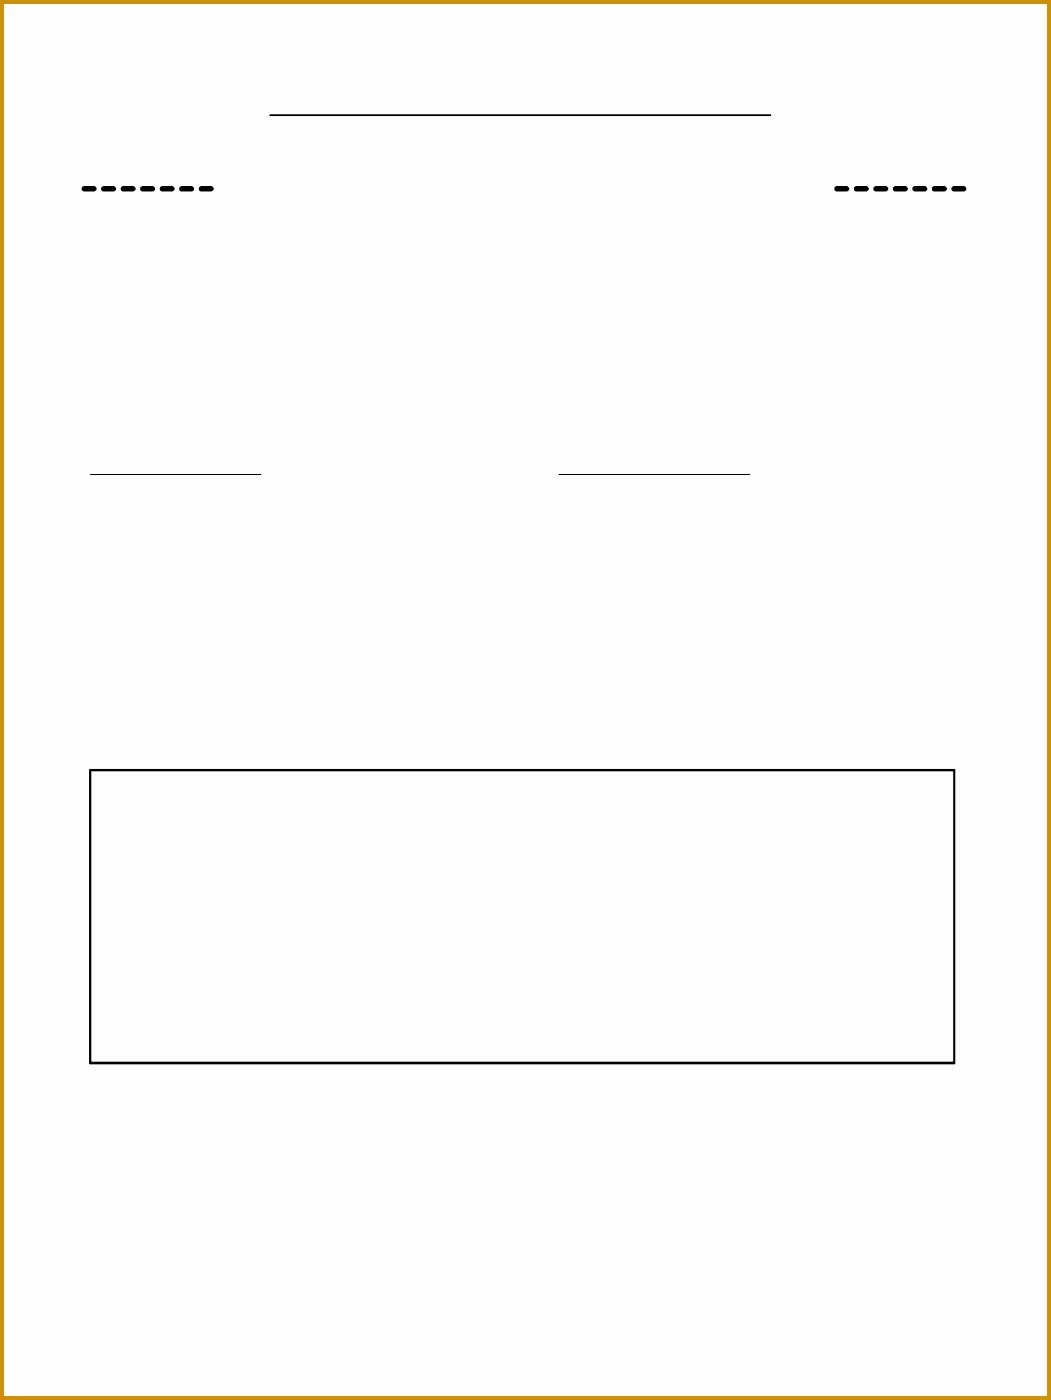 Fax Cover Sheet Disclaimer Fresh 5 Confidentiality Statement for Fax